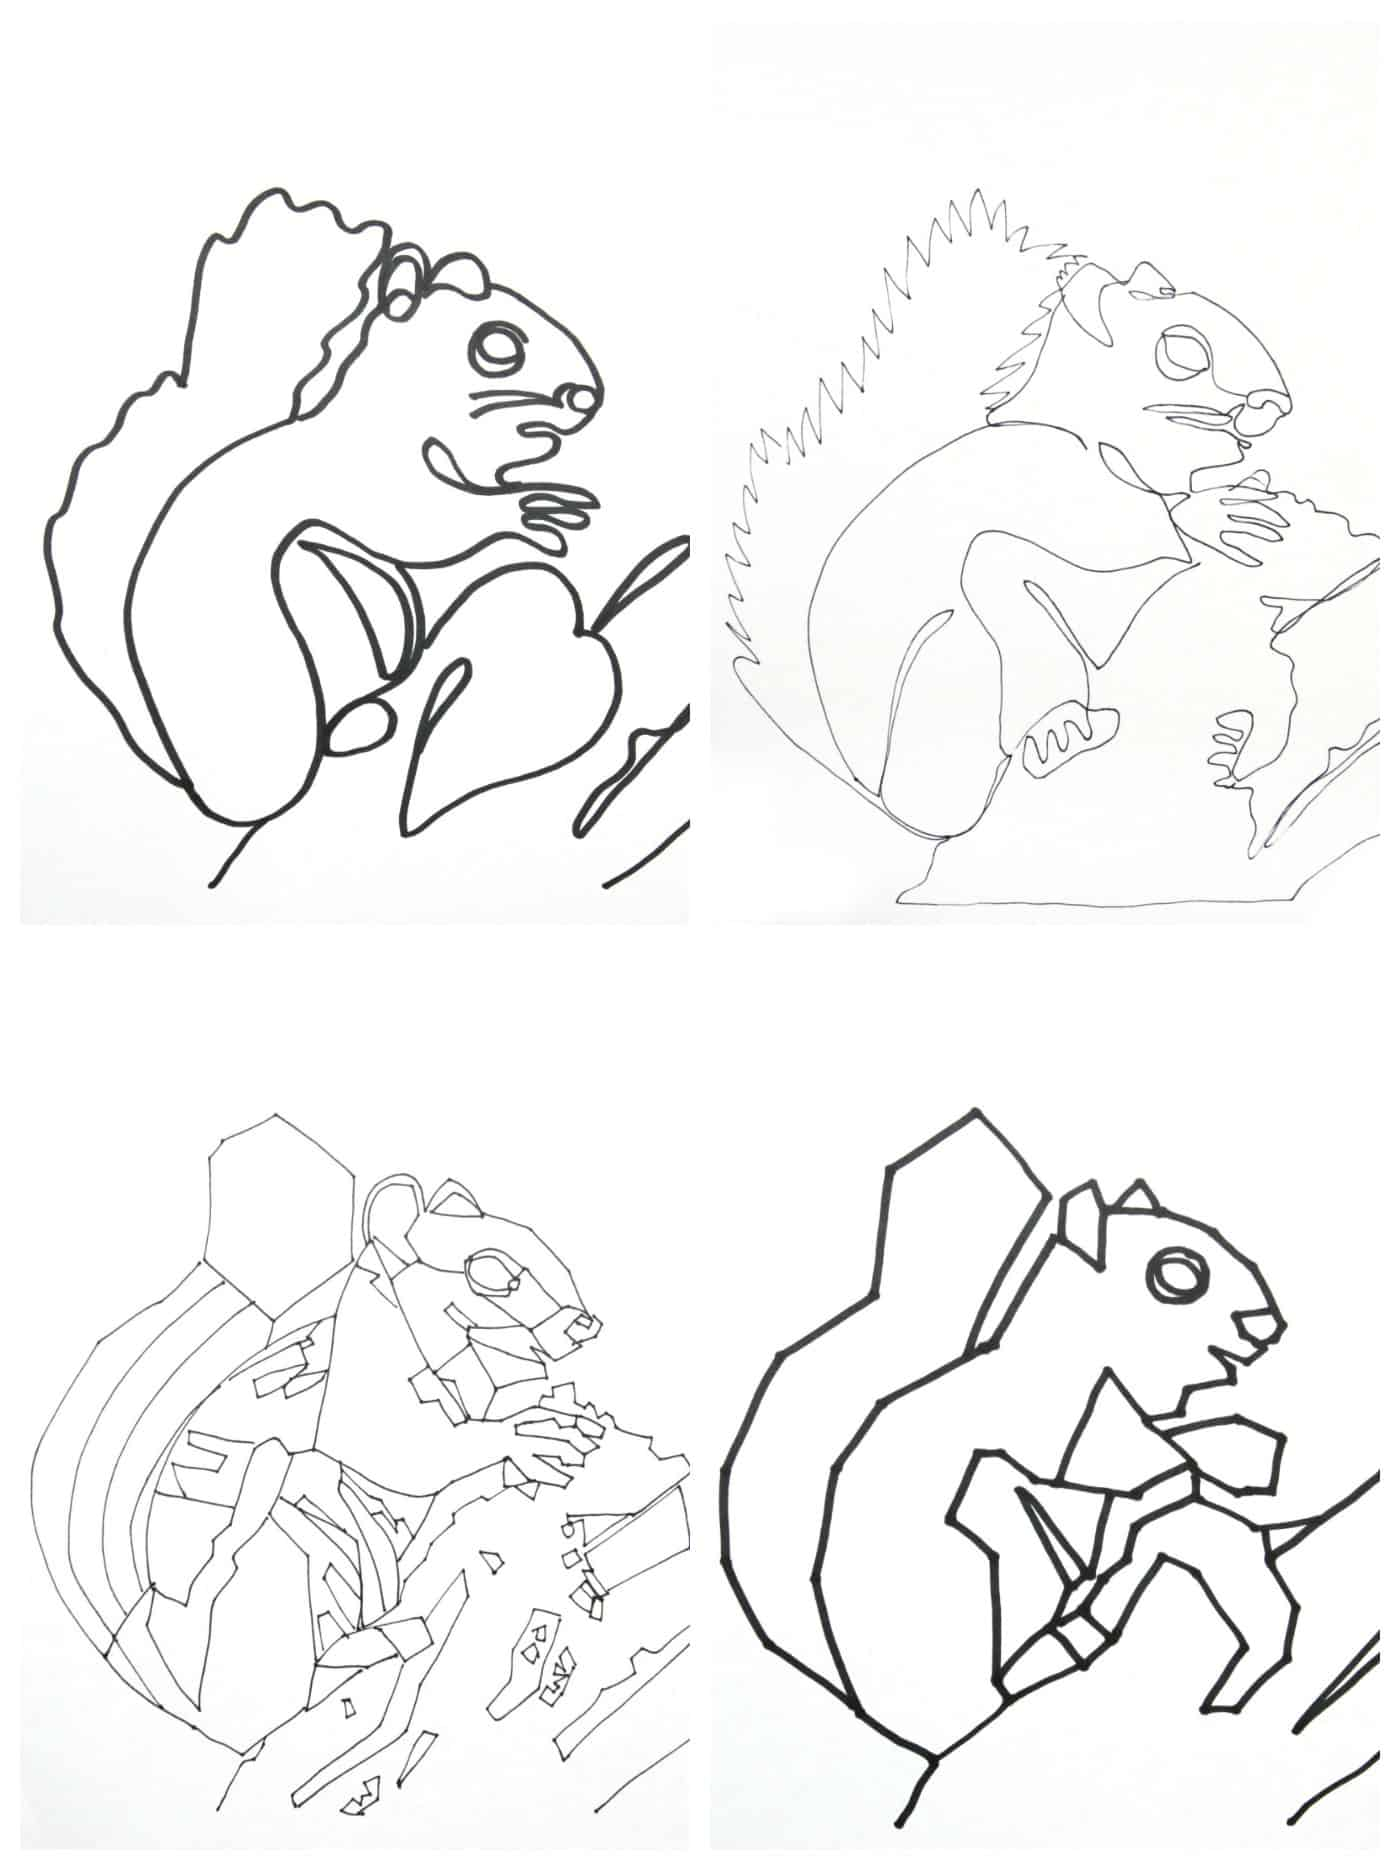 4 traced squirrel drawings